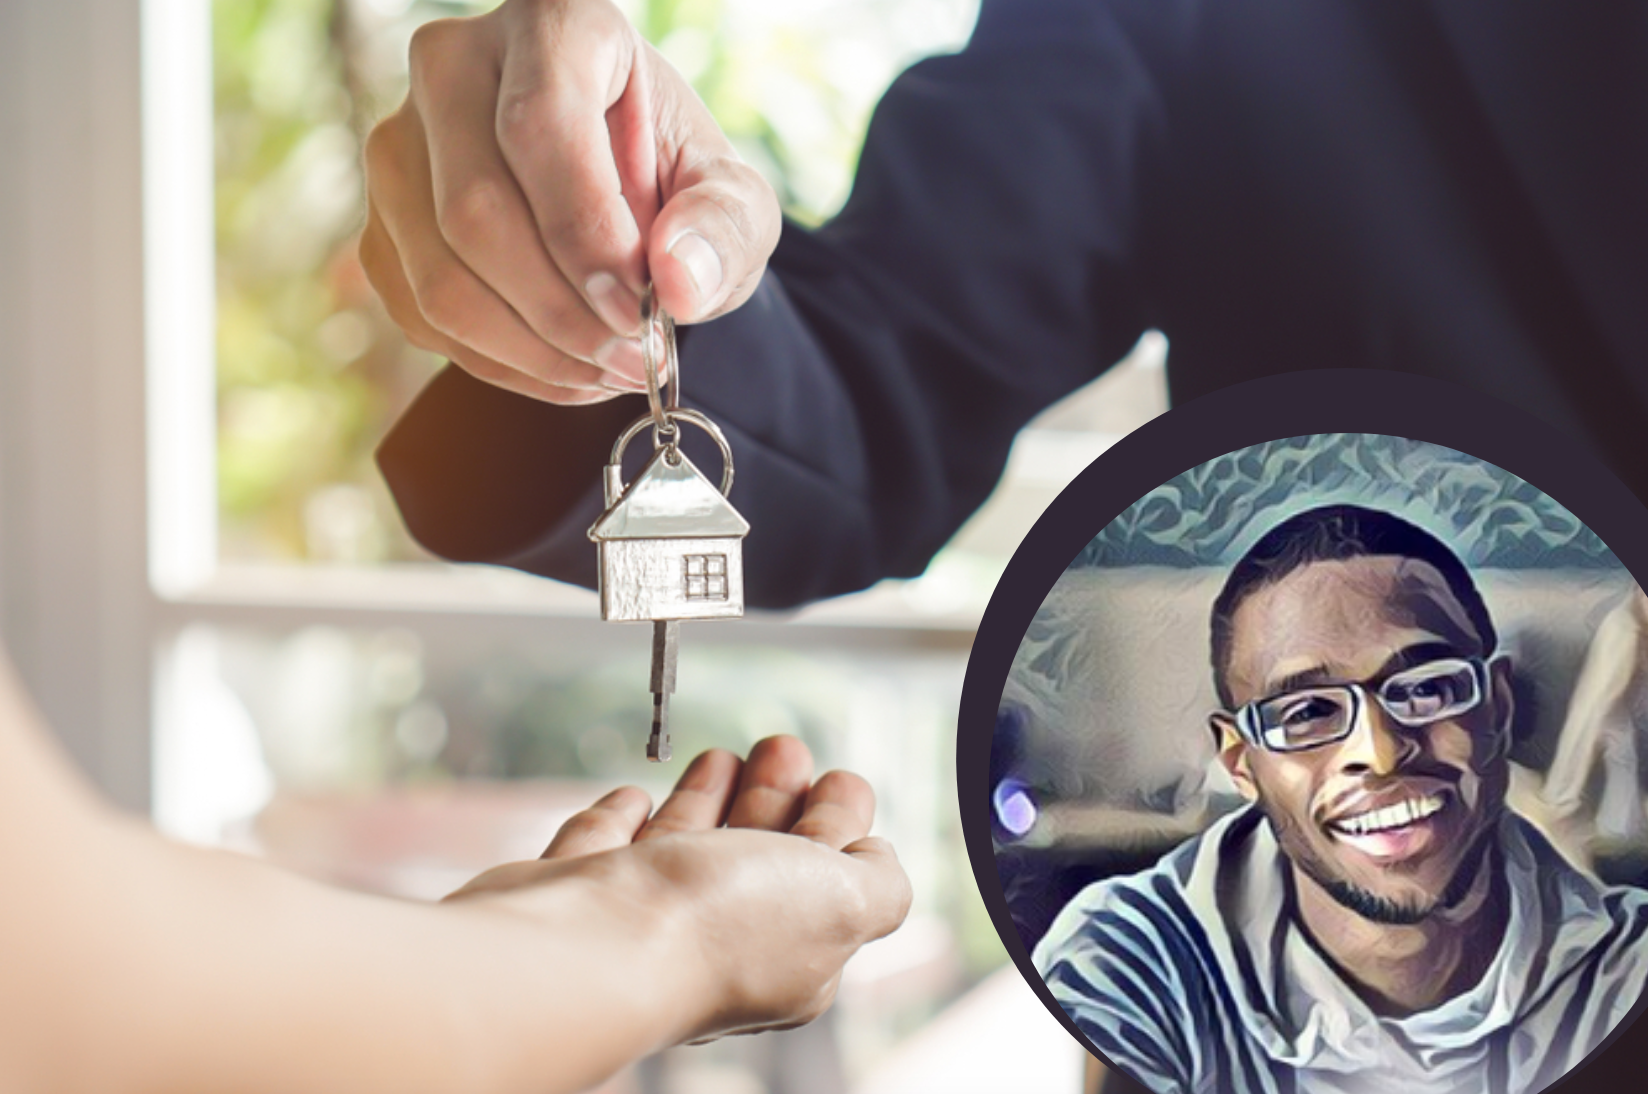 Real Estate Expert Winston Deloney Has Advice for First-Time Landlords